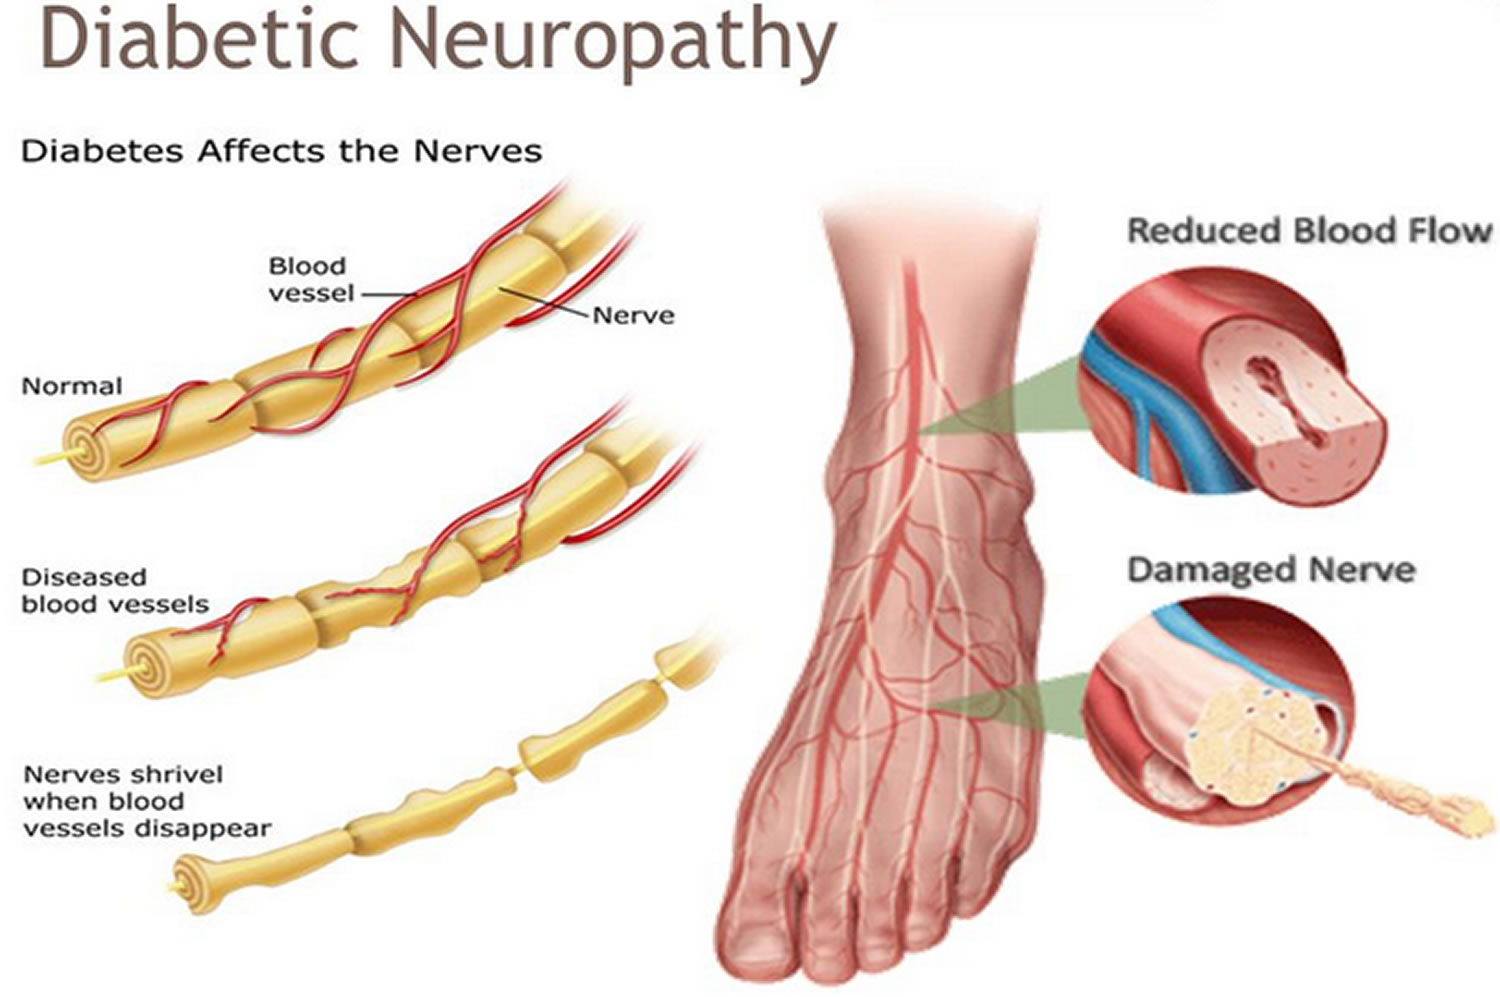 Diabetic Neuropathy Causes Symptoms Signs Medications